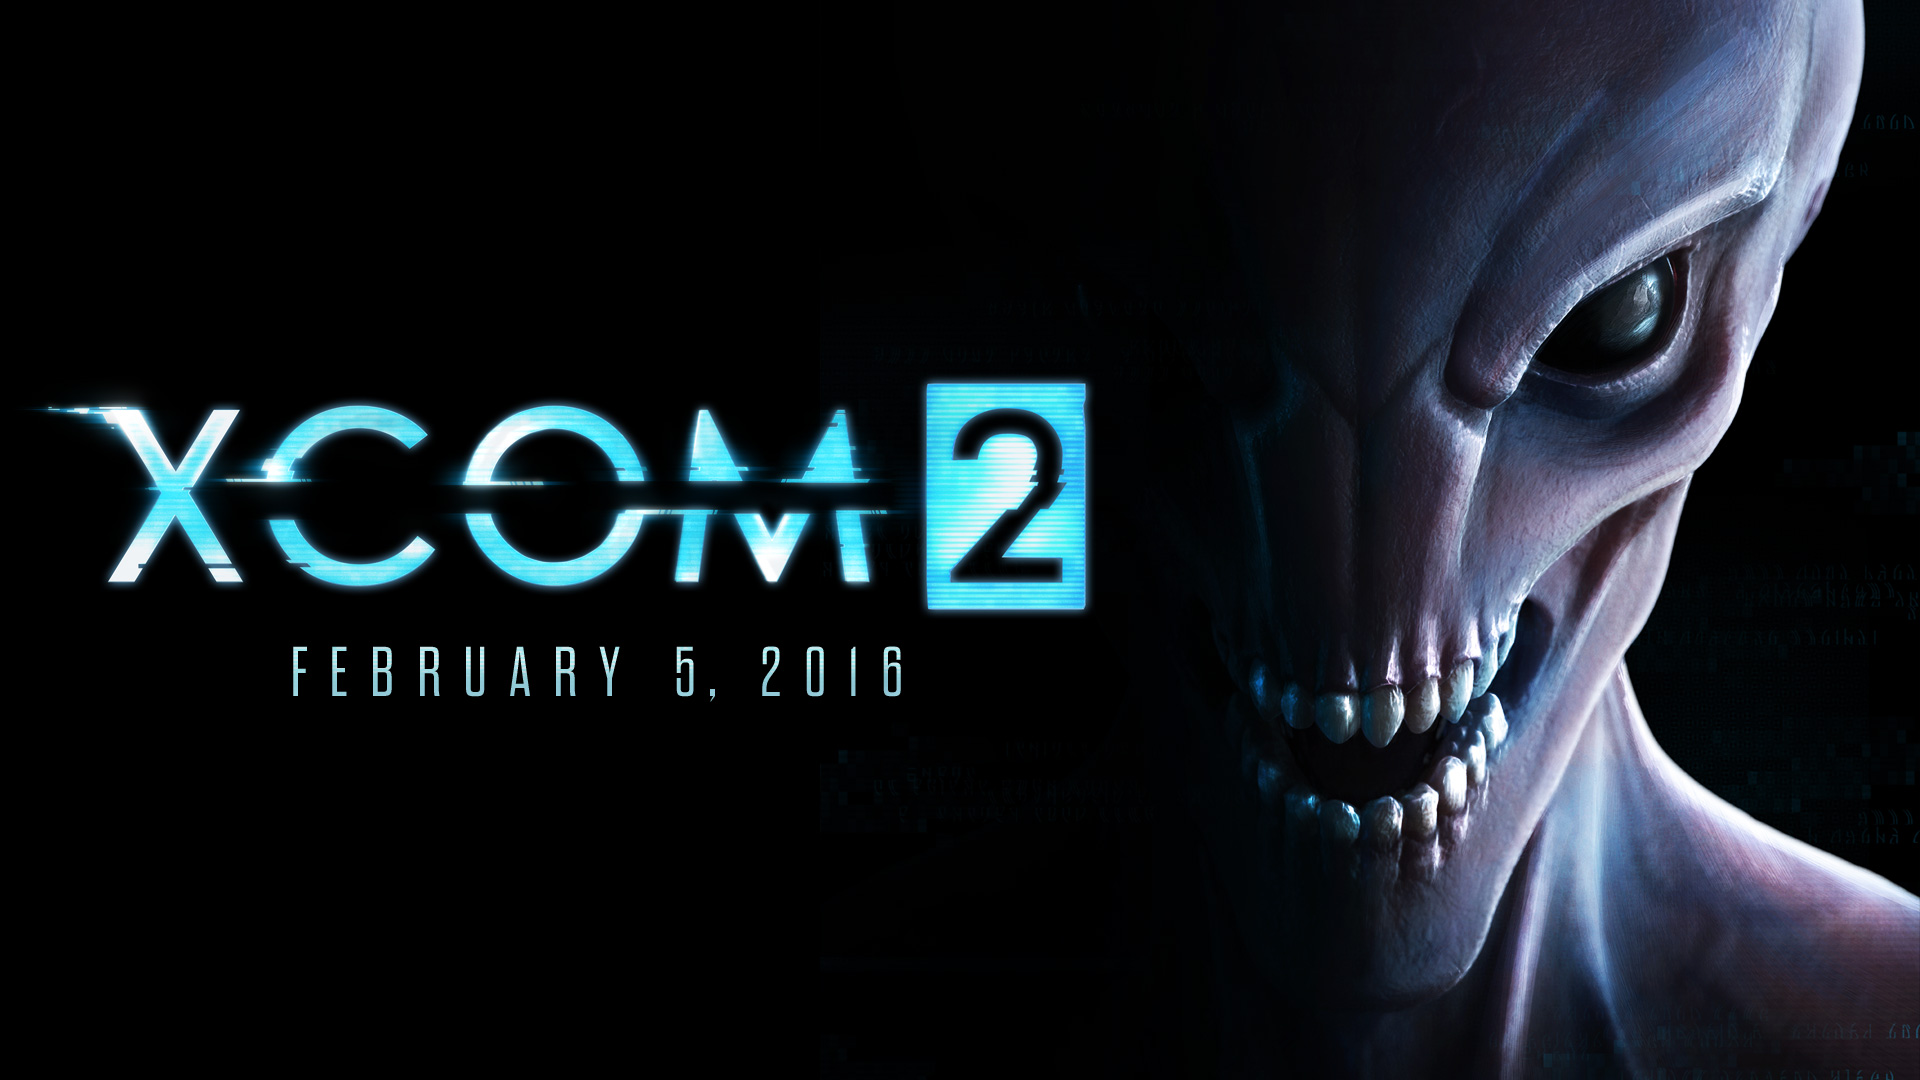 xcom-2-now-coming-to-pc-worldwide-on-february-5-2016